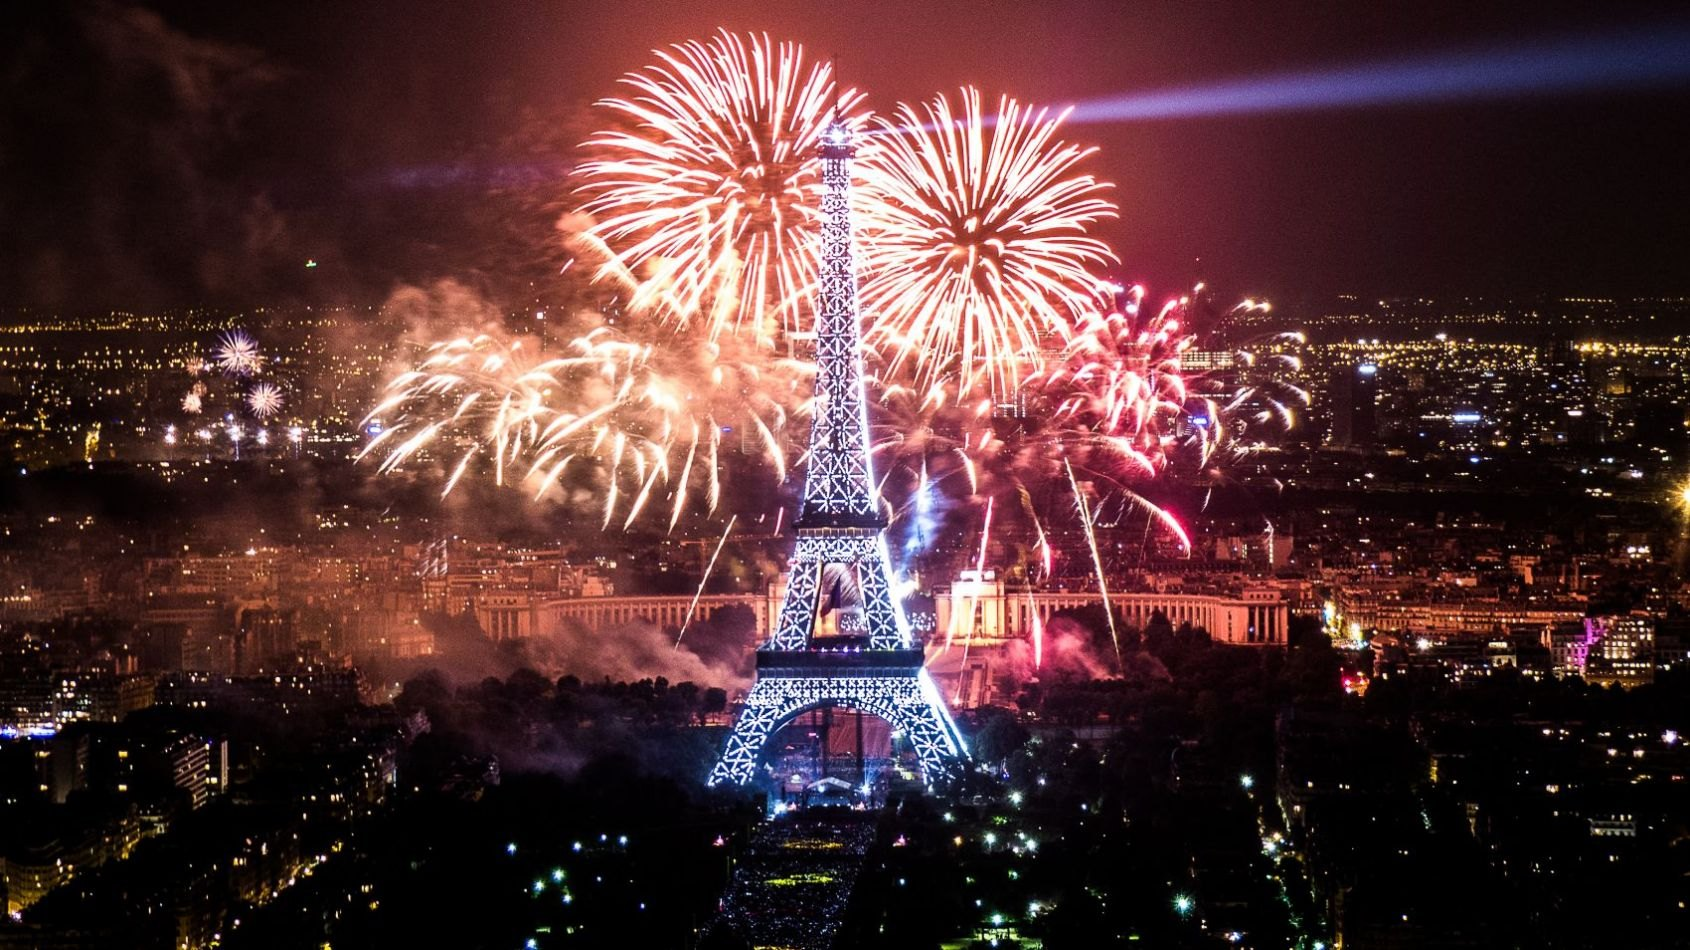 Star Wars s'invite au feu d'artifice du 14 Juillet à la Tour Eiffel !